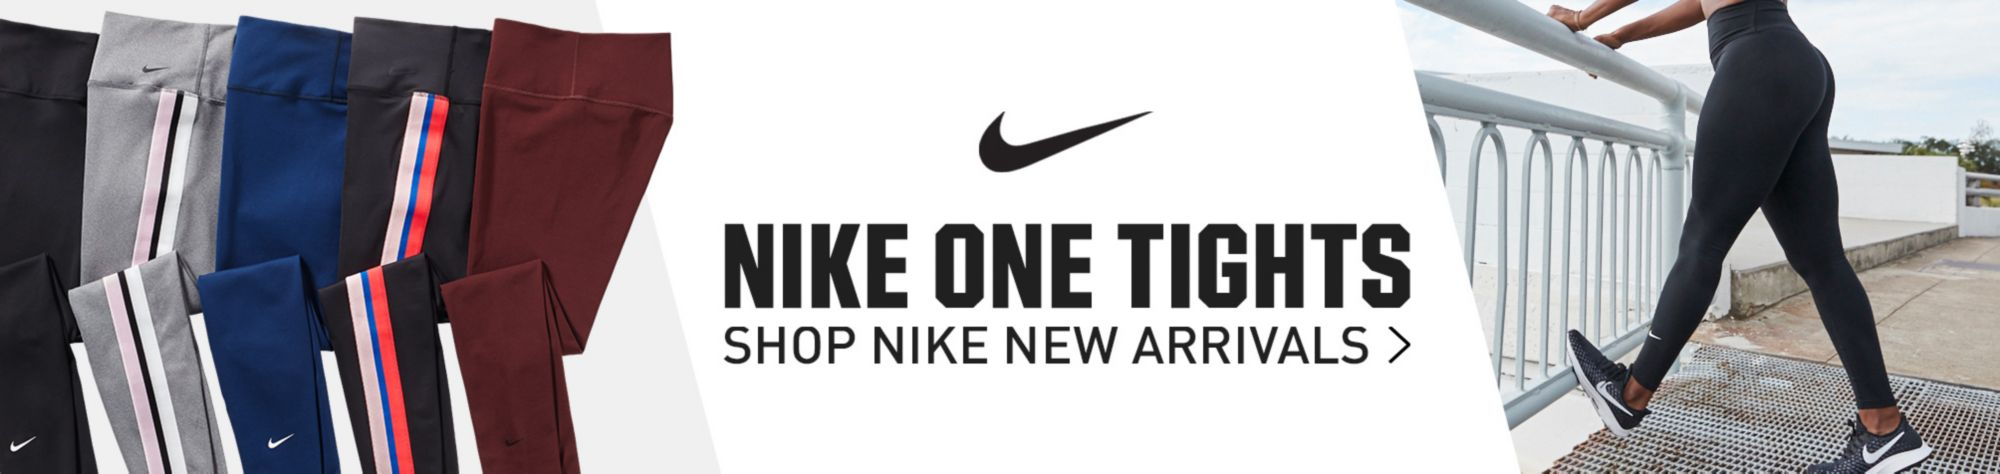 Nike One Tights Shop Nike New Arrivals